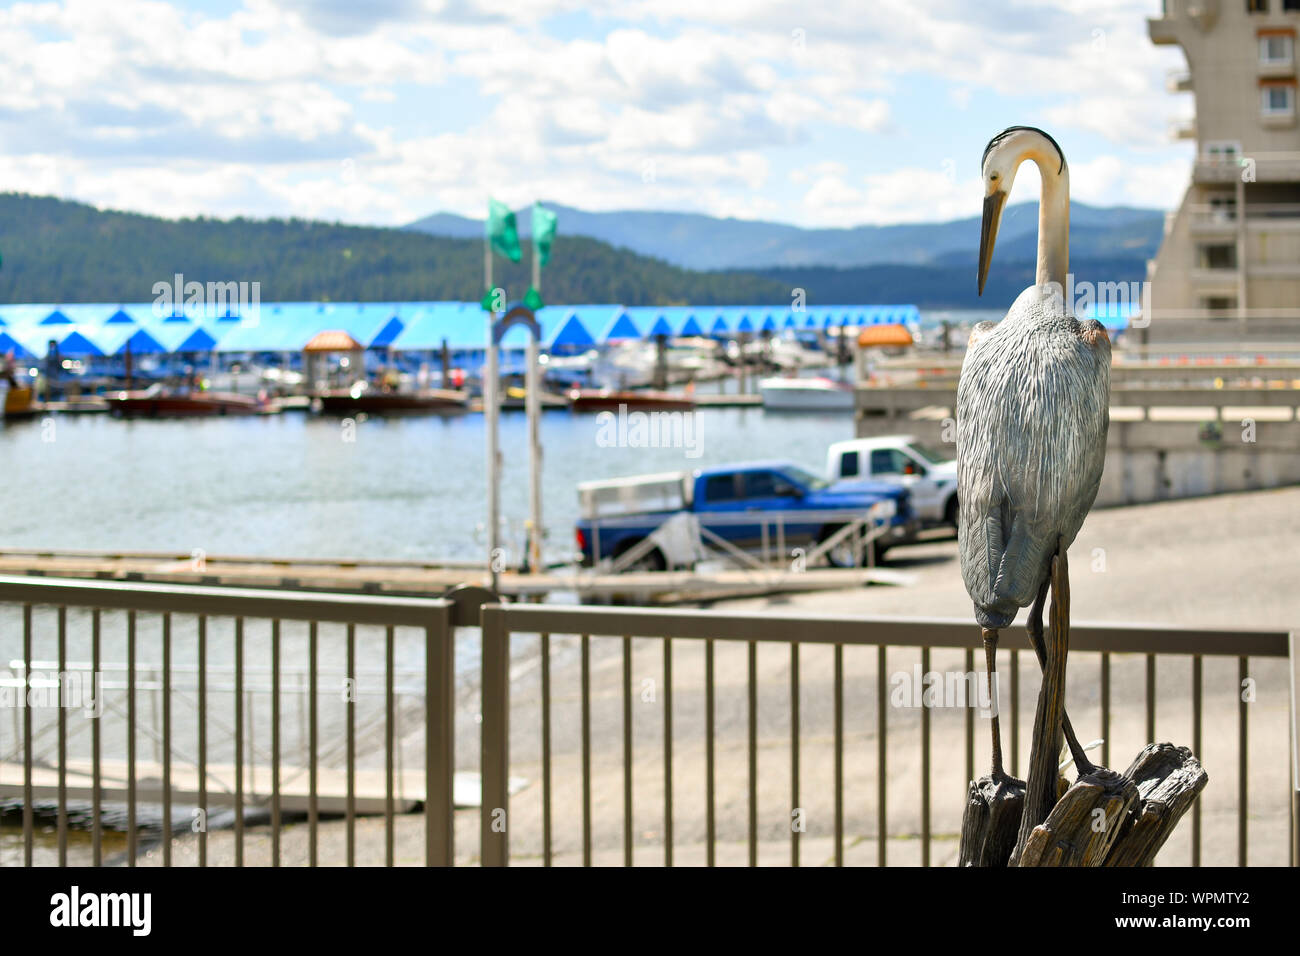 A realistic pelican statue figurine sits and watches over the boat launch and floating boardwalk at the Coeur d'Alene Idaho resort marina Stock Photo